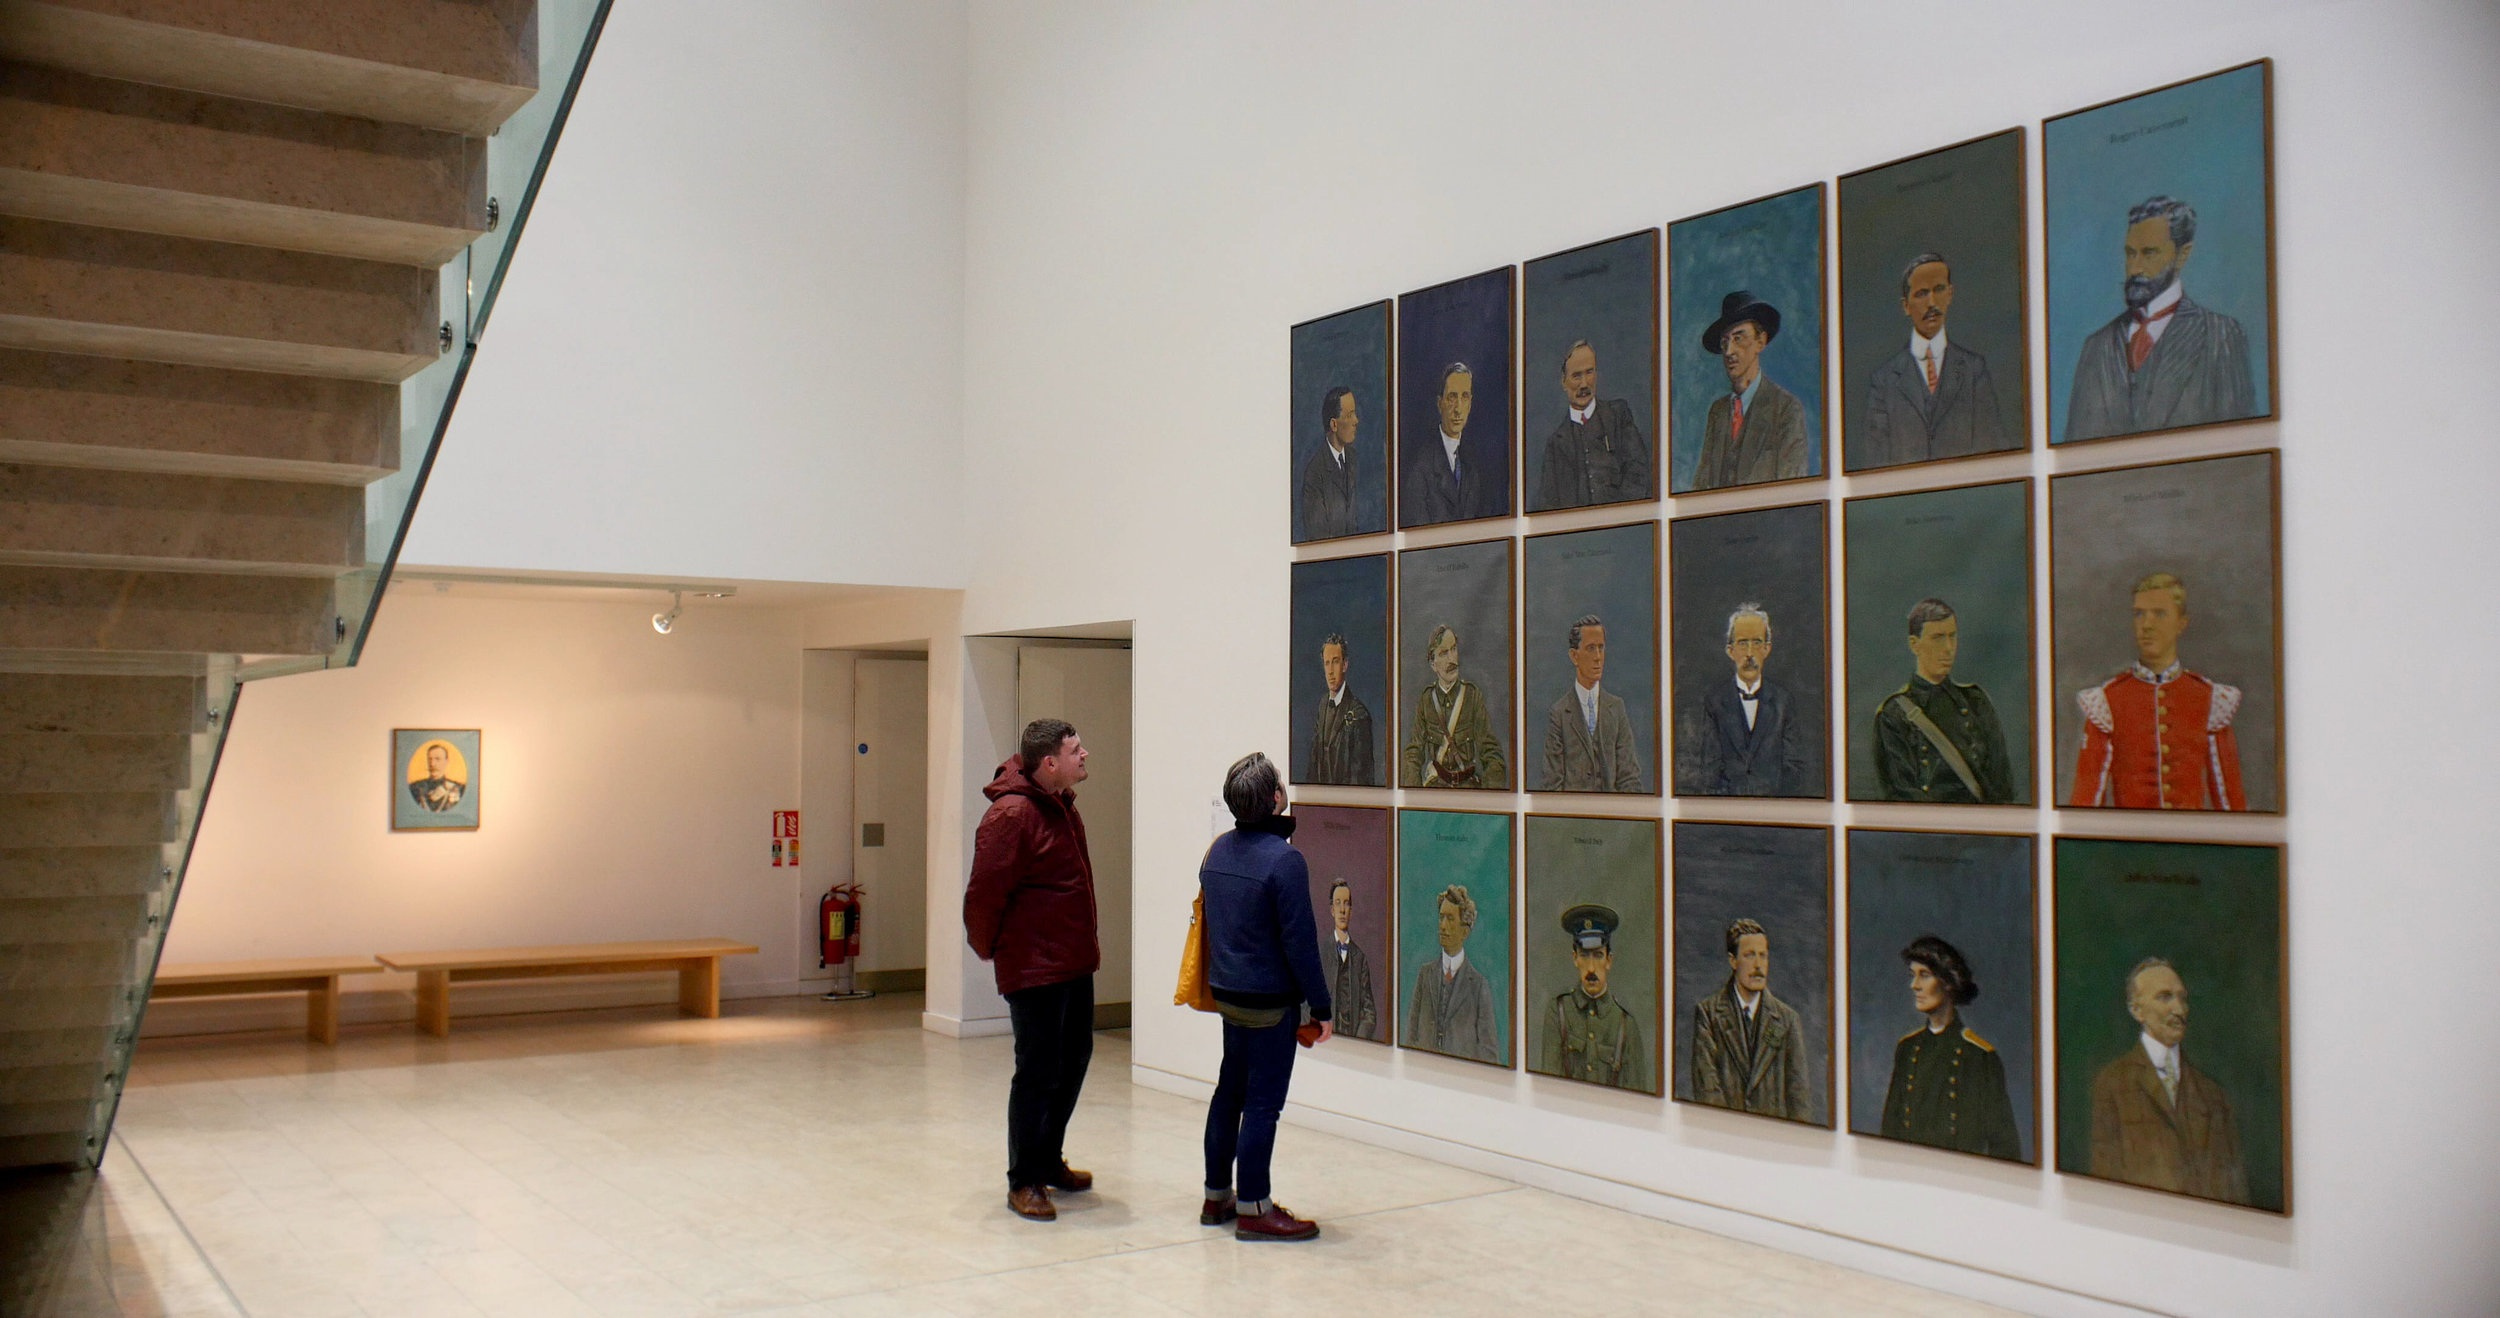 The 1916 Portraits, Image courtesy of Emile Dinneen